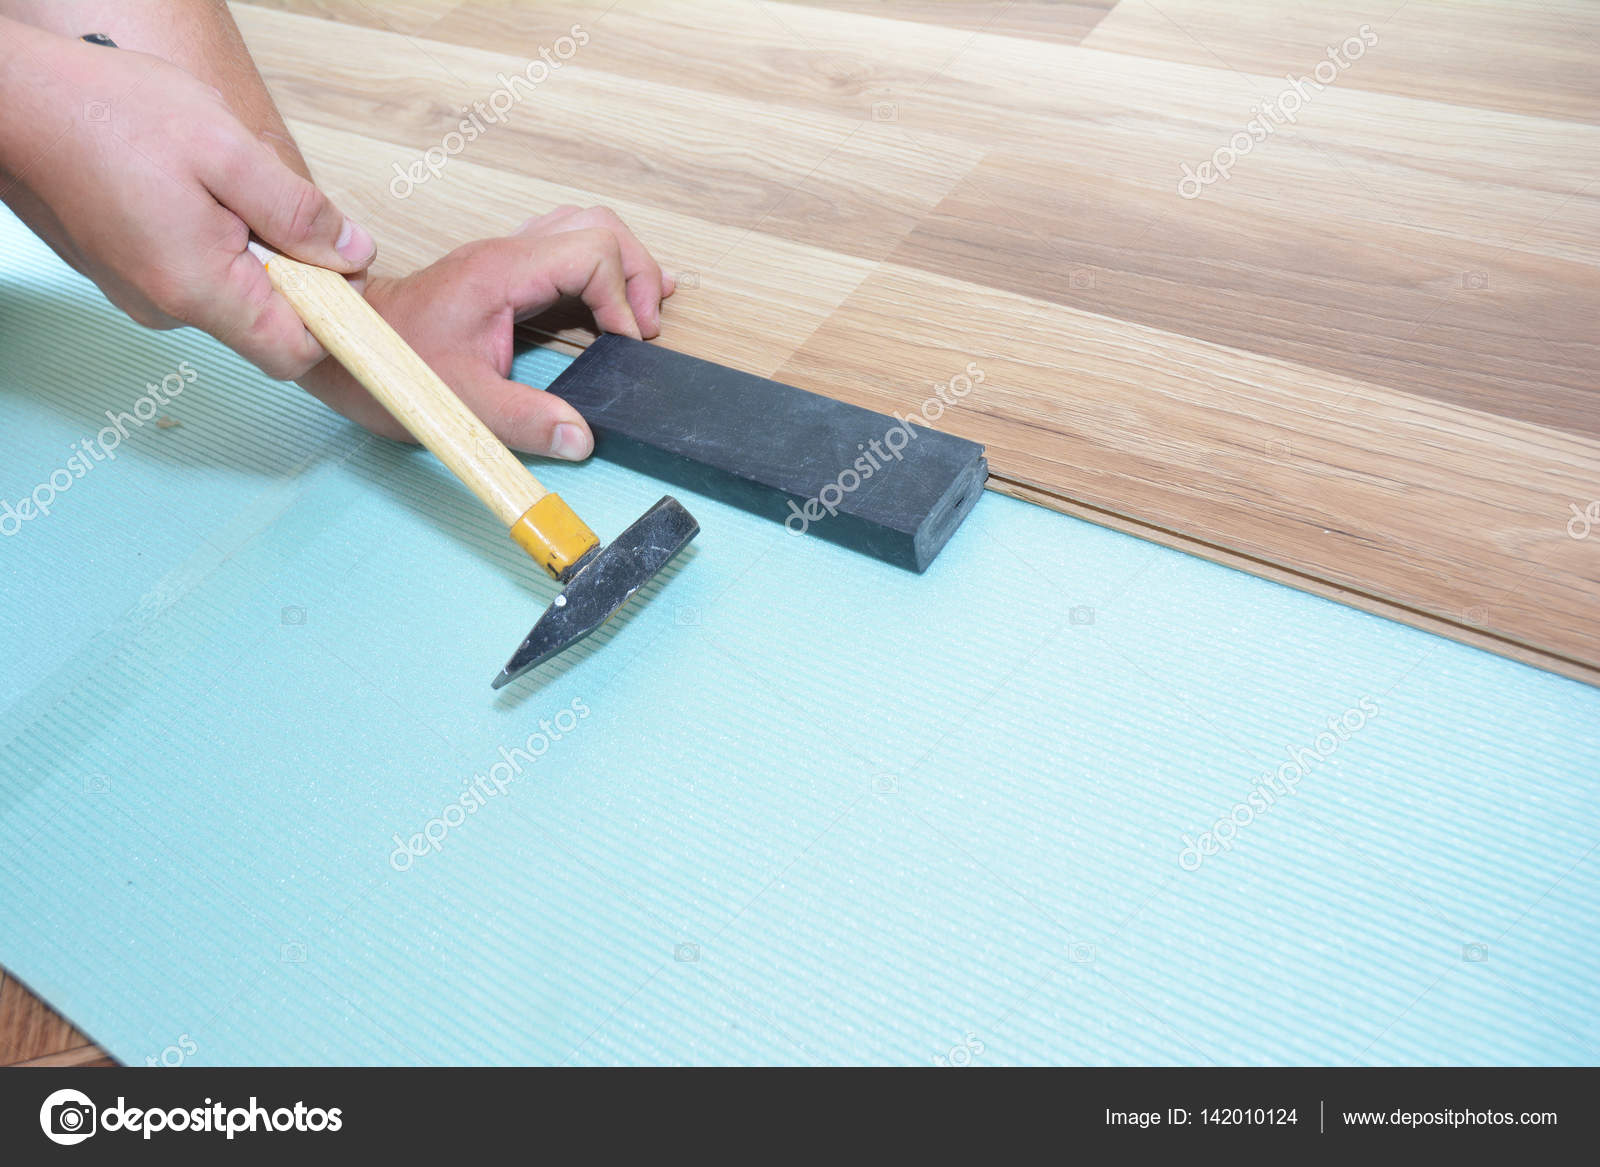 Worker Installing Wooden Laminate Flooring With Hammer Handyman Laying Down Boards While Renovating A House Photo By Thefutureis